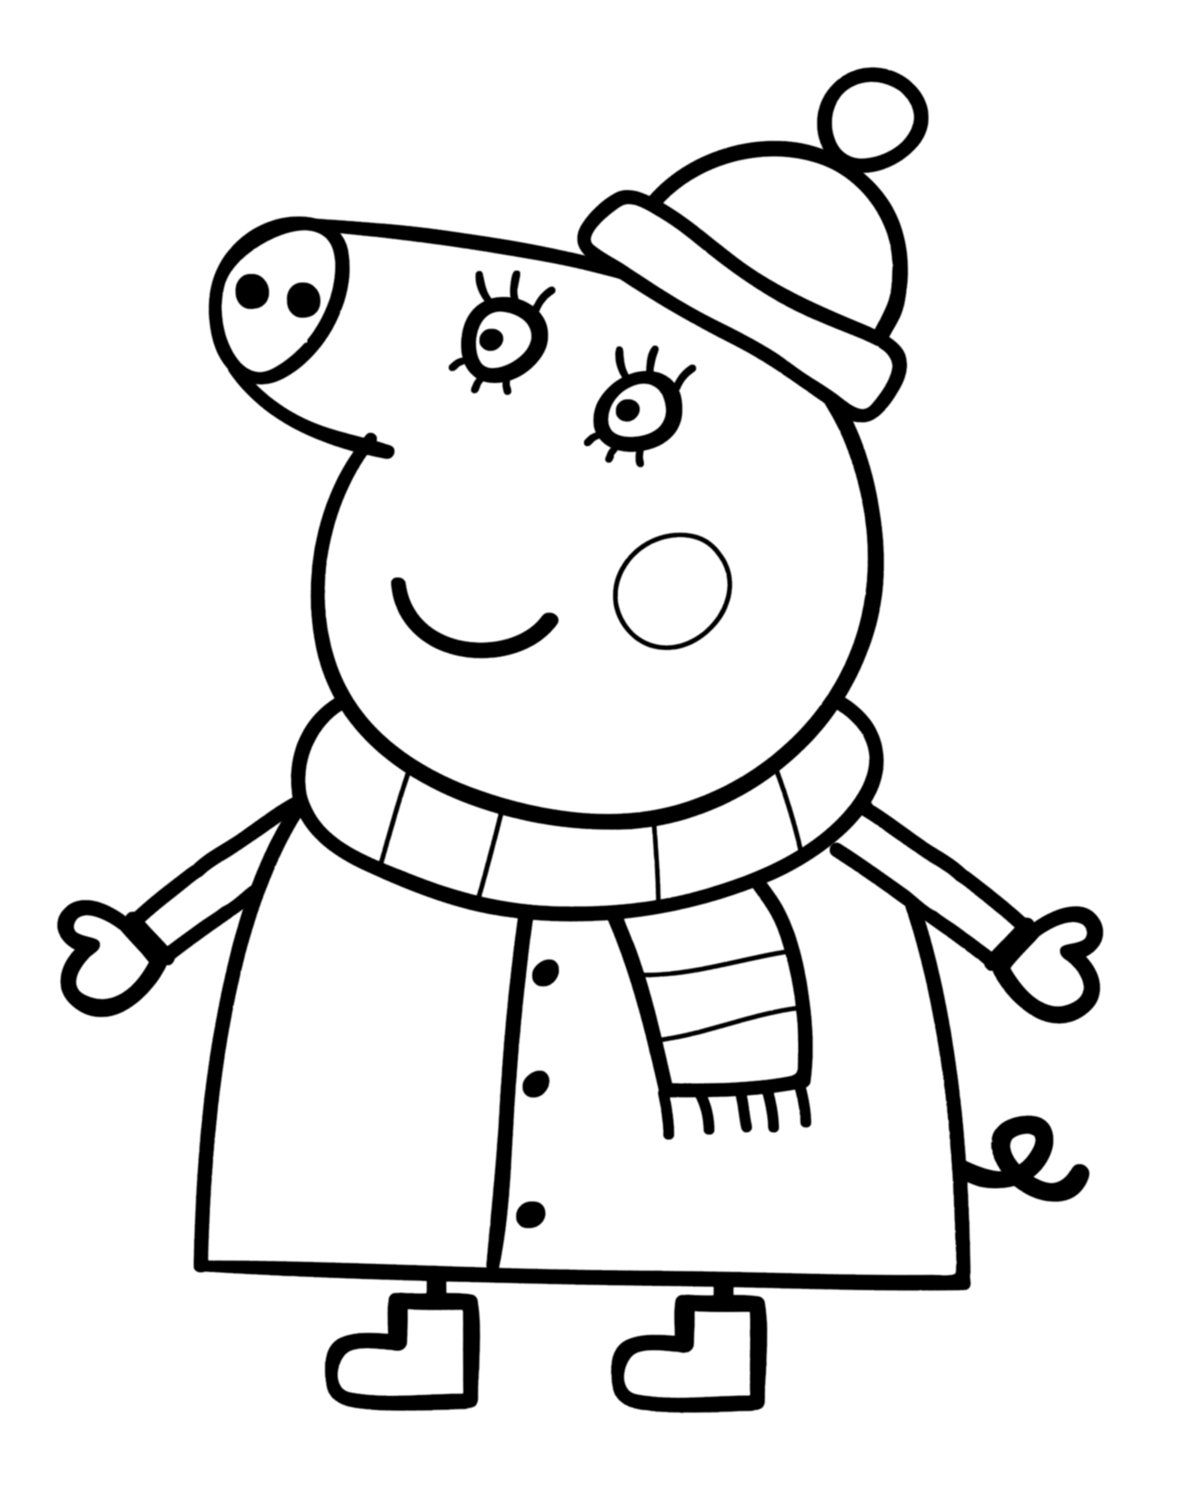 Peppa pig coloring pages ~ FUN & LEARN : Free worksheets for kid: Peppa Pig Coloring ...